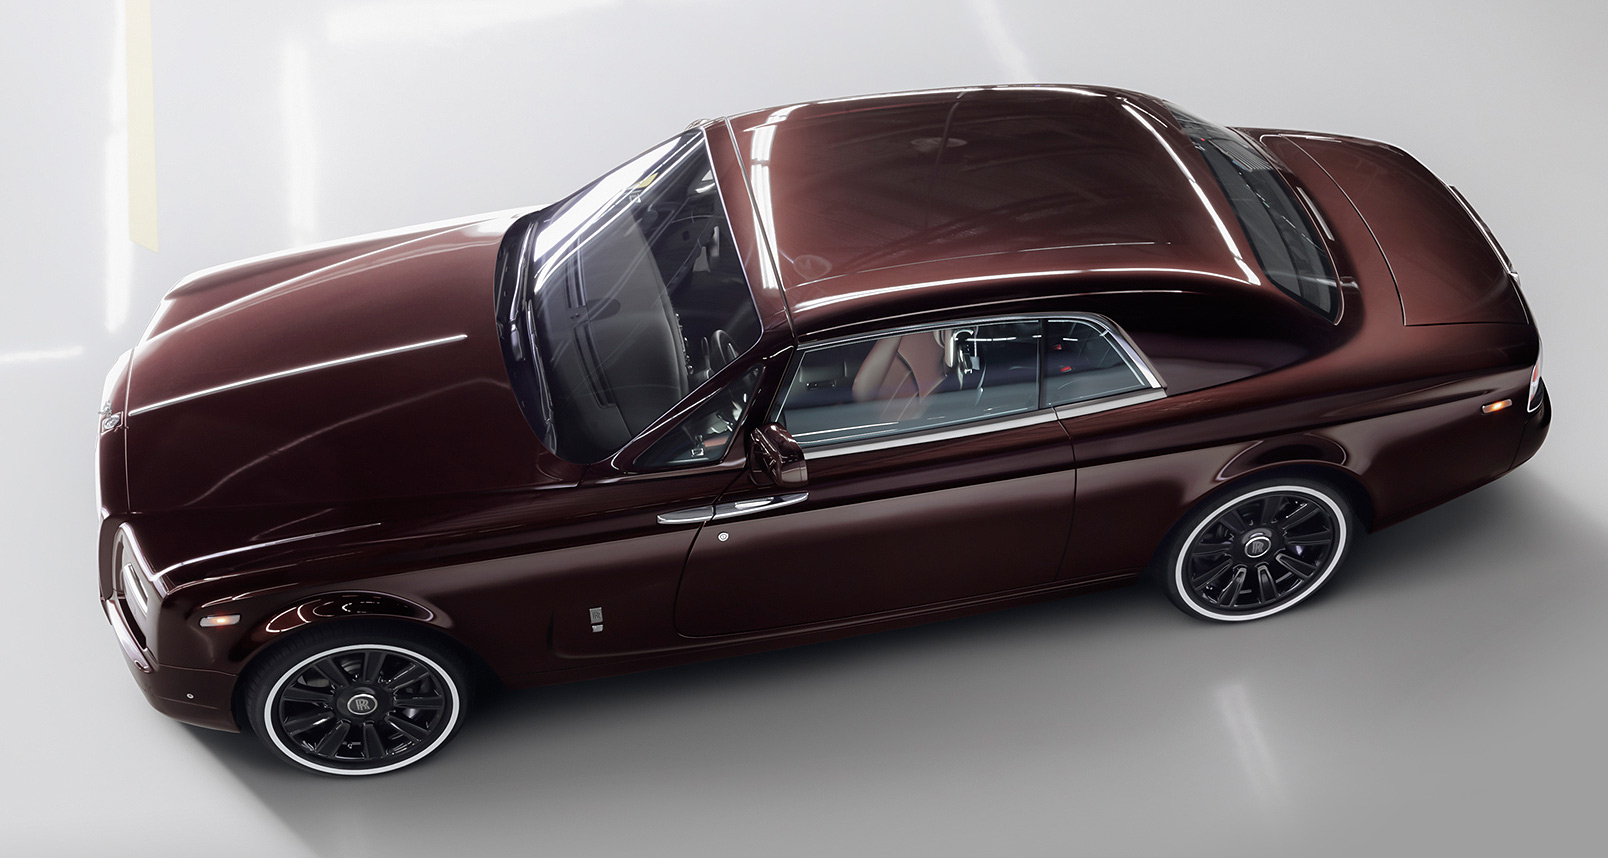 Rolls-Royce Motor Cars Reaches The Pinnacle With The Phantom Zenith Collection